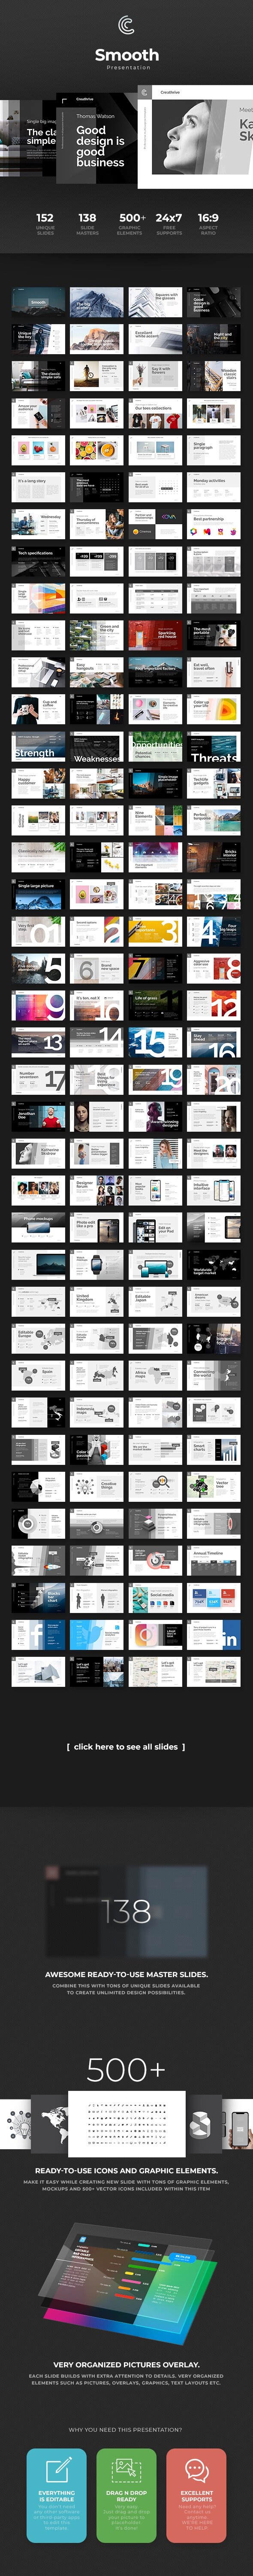 Smooth Keynote - Keynote Templates Presentation Templates